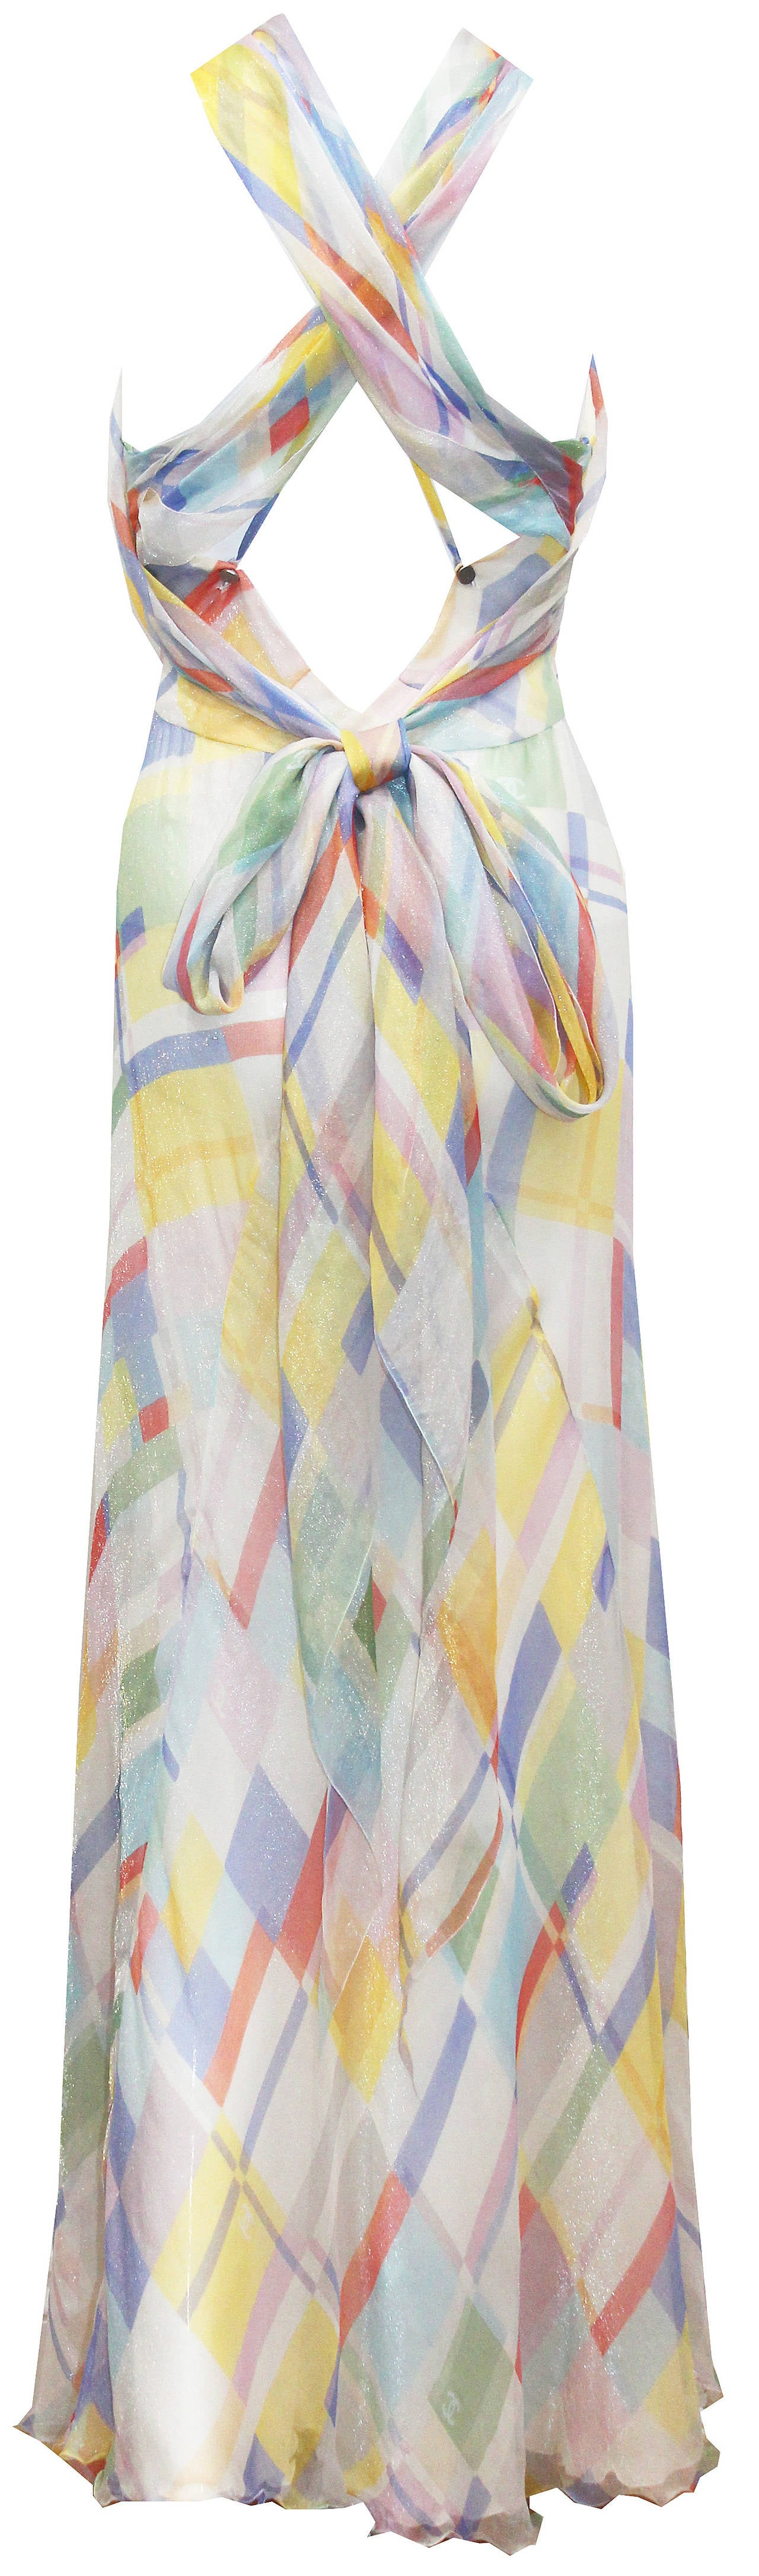 A pastel palette silk chiffon scarf dress by chanel c for I see both sides like chanel shirt